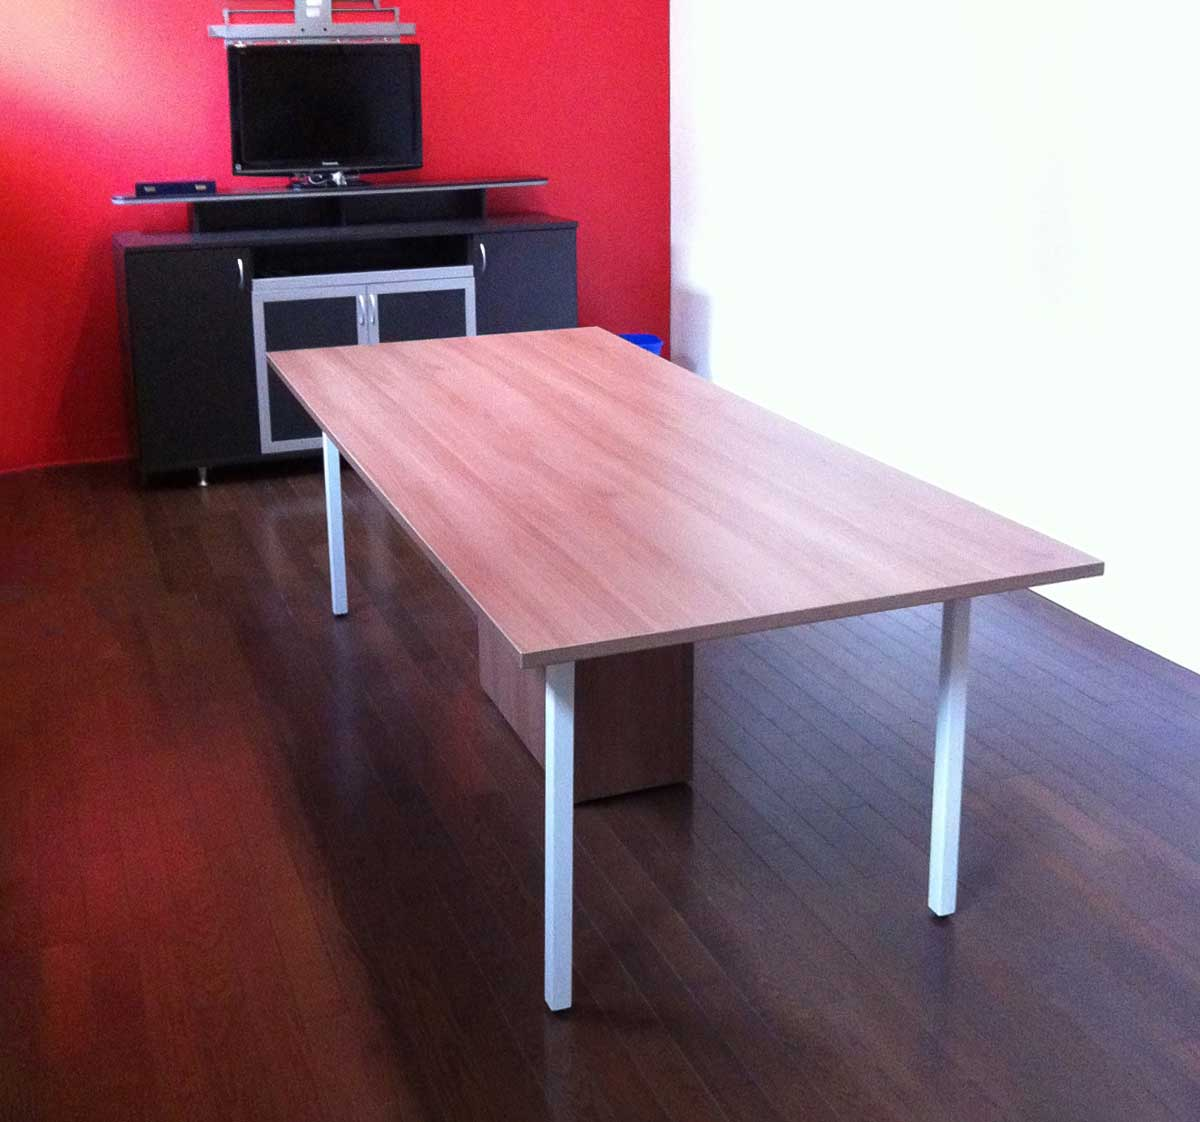 Meeting Table with legs, cabinet